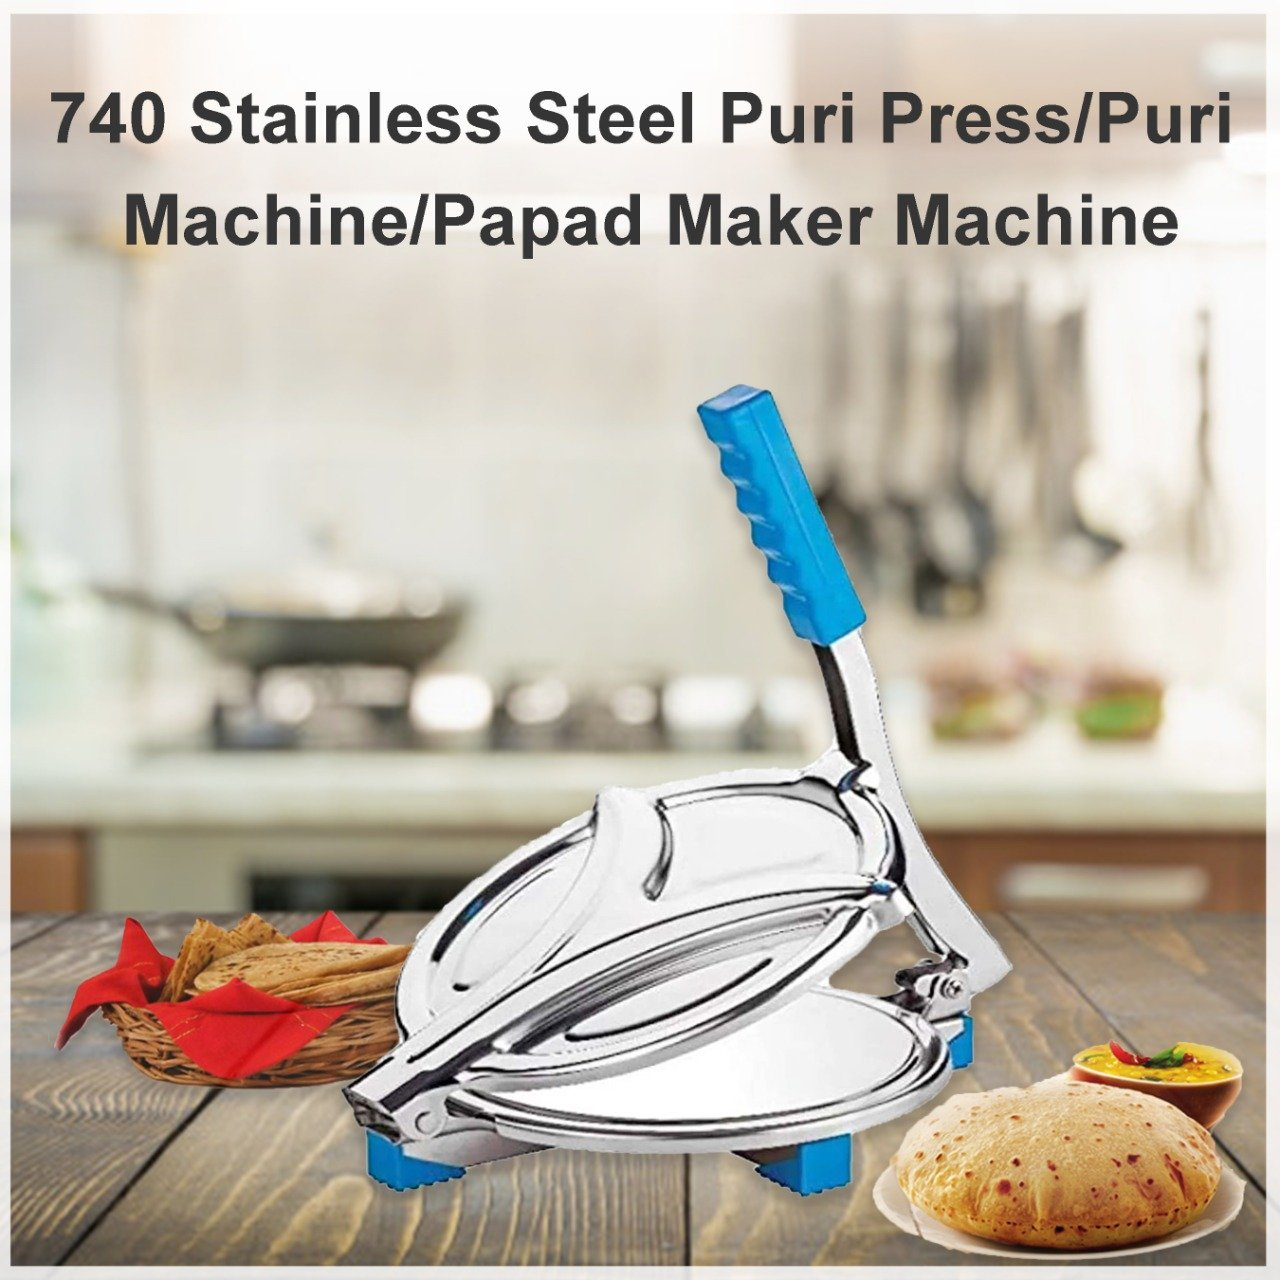 Stainless Steel Puri Press/Puri Machine/Papad Maker Machine